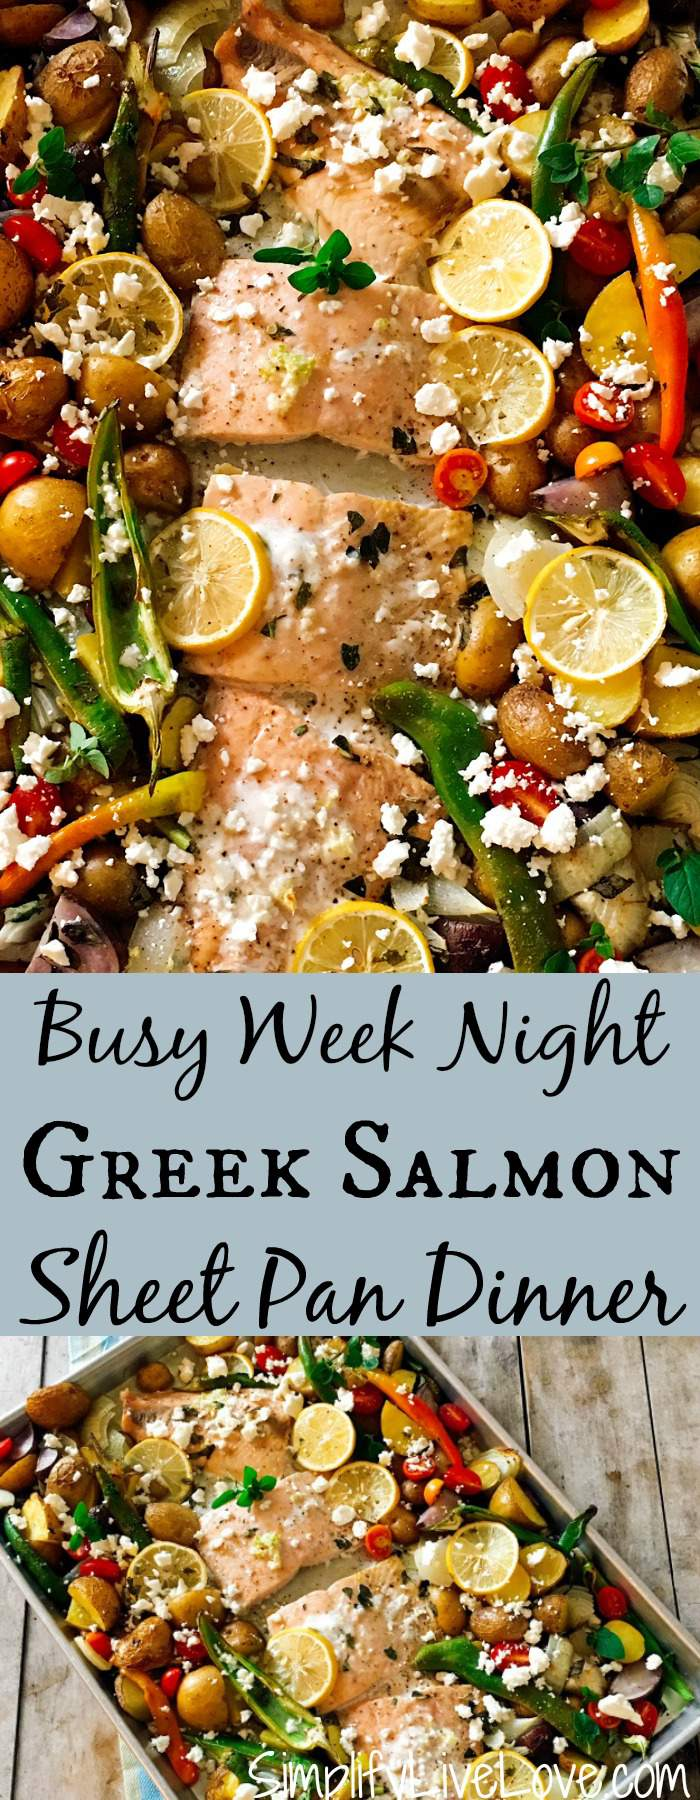 This Greek salmon sheet pan dinner recipe cooks on only one pan for quick clean up! Prep is pretty easy and the dish is so delicious! Try it tonight!